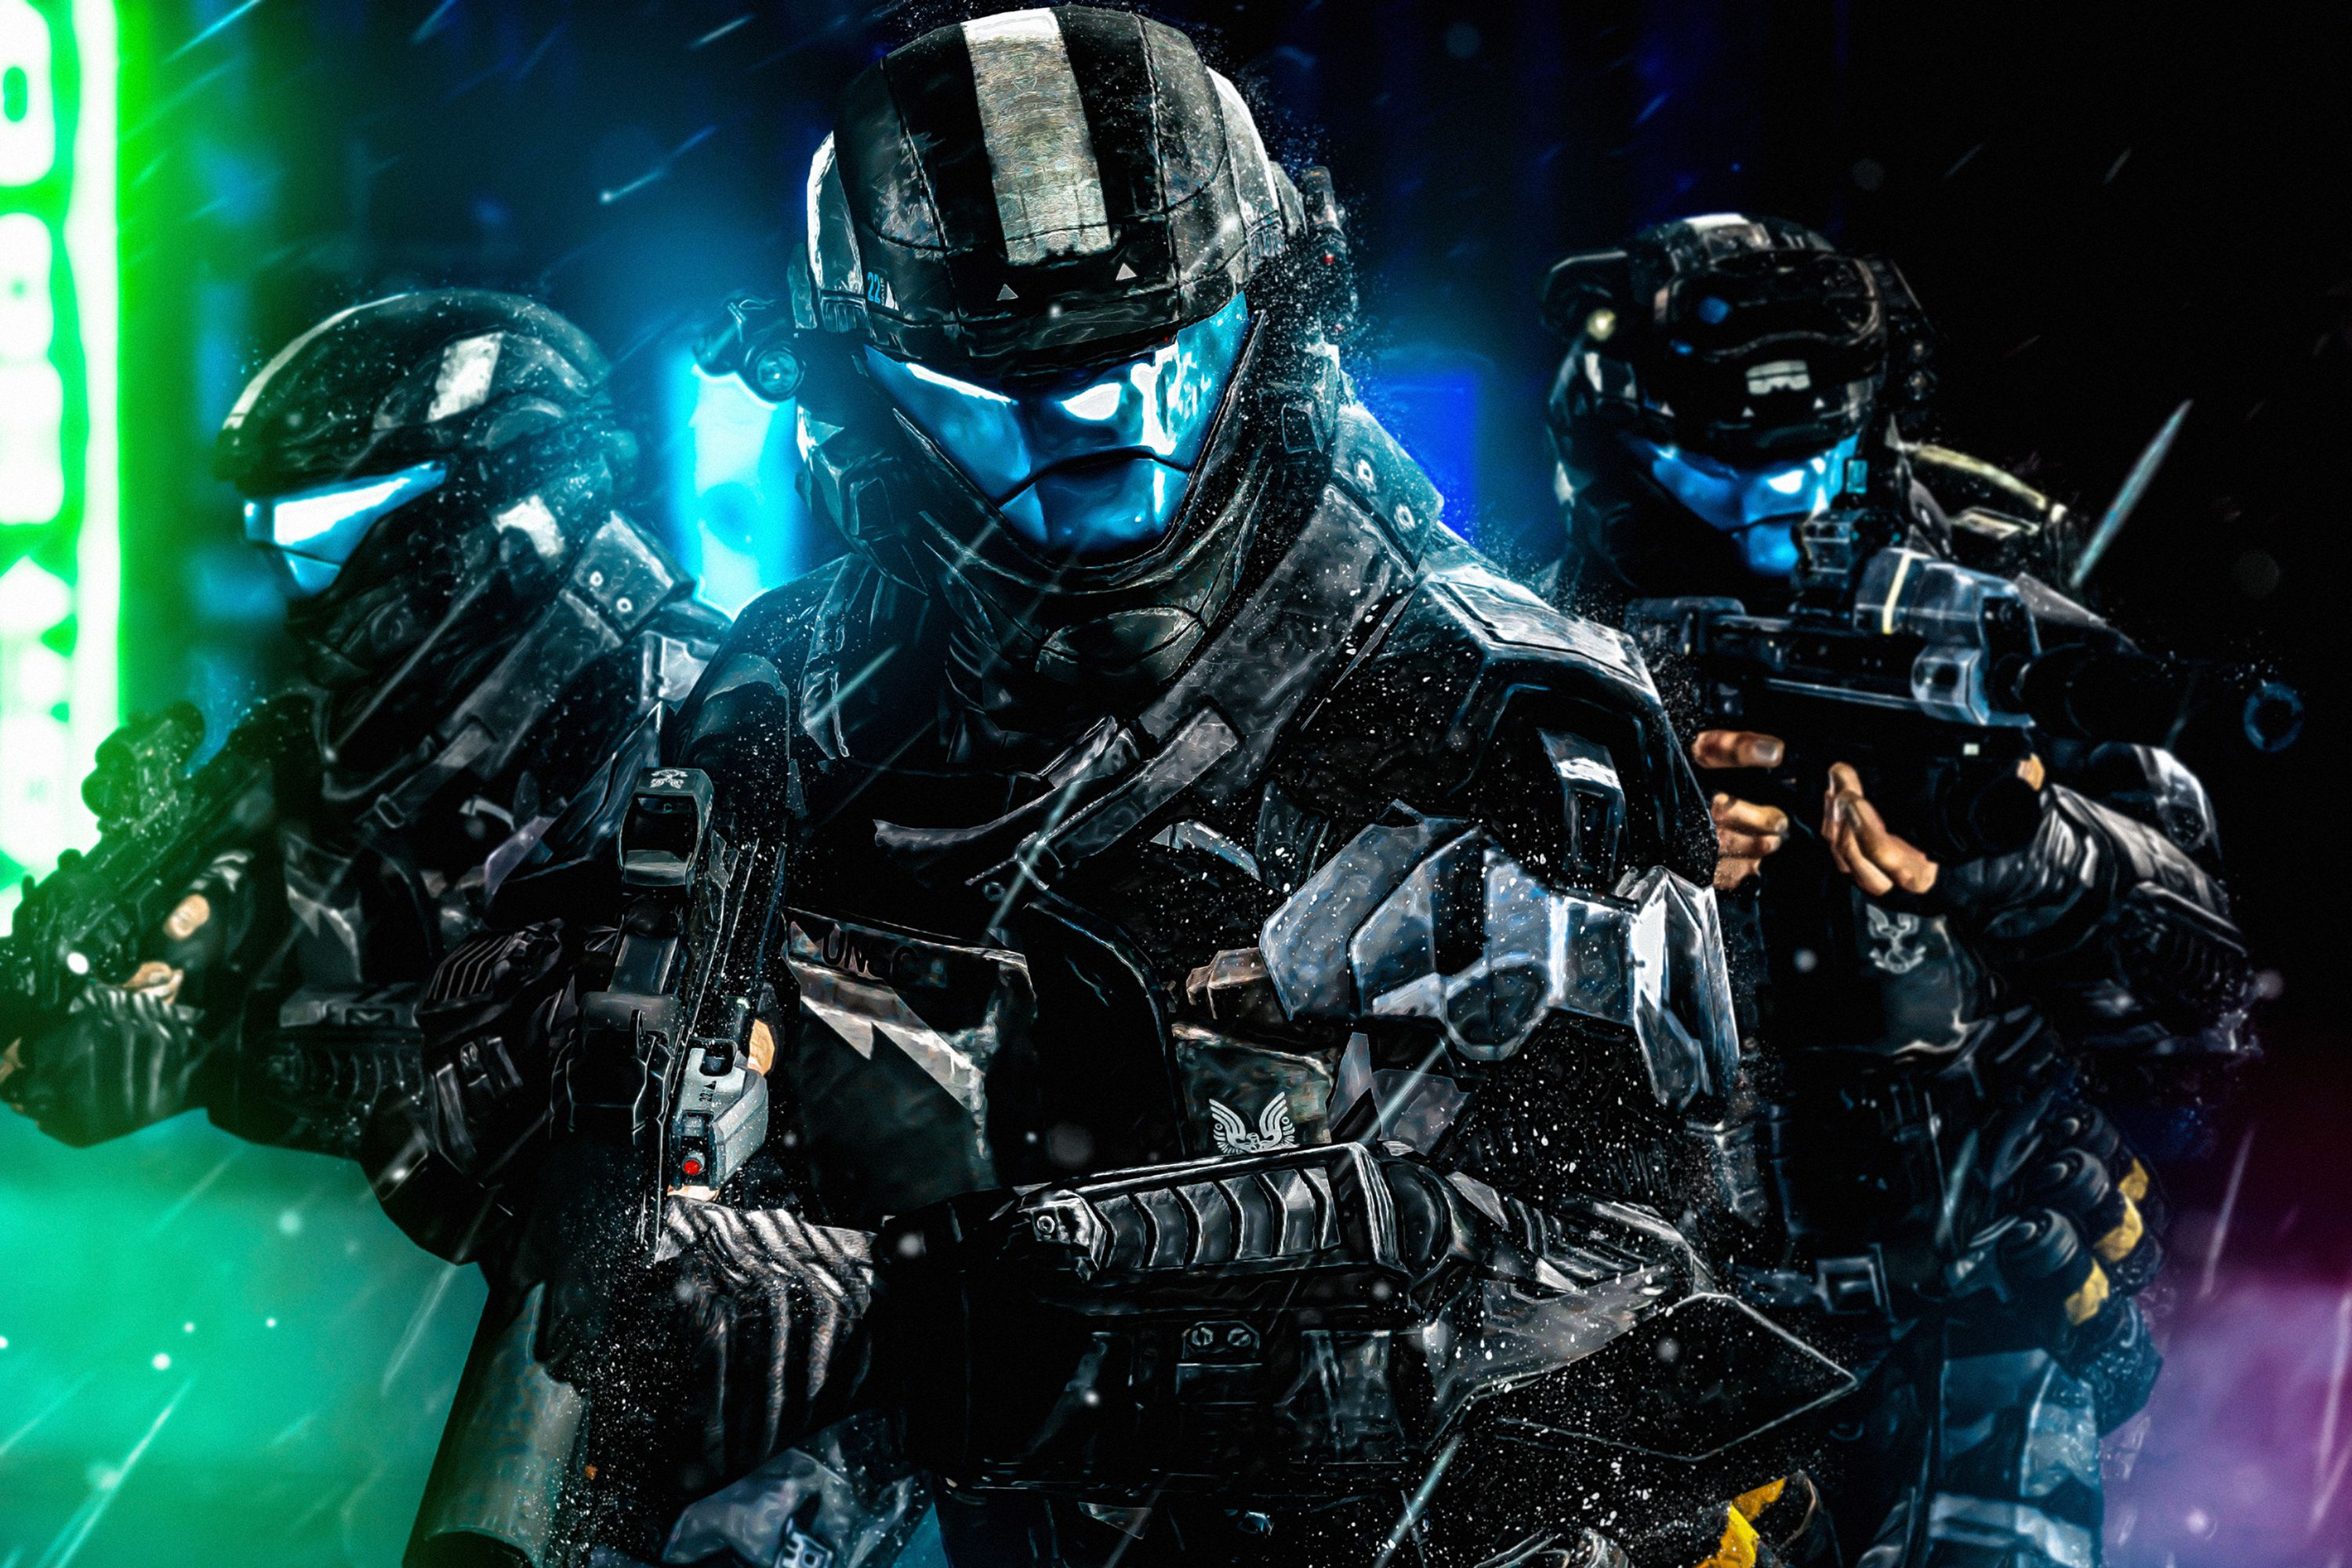 Halo 3 Odst Wallpapers Top Free Halo 3 Odst Backgrounds